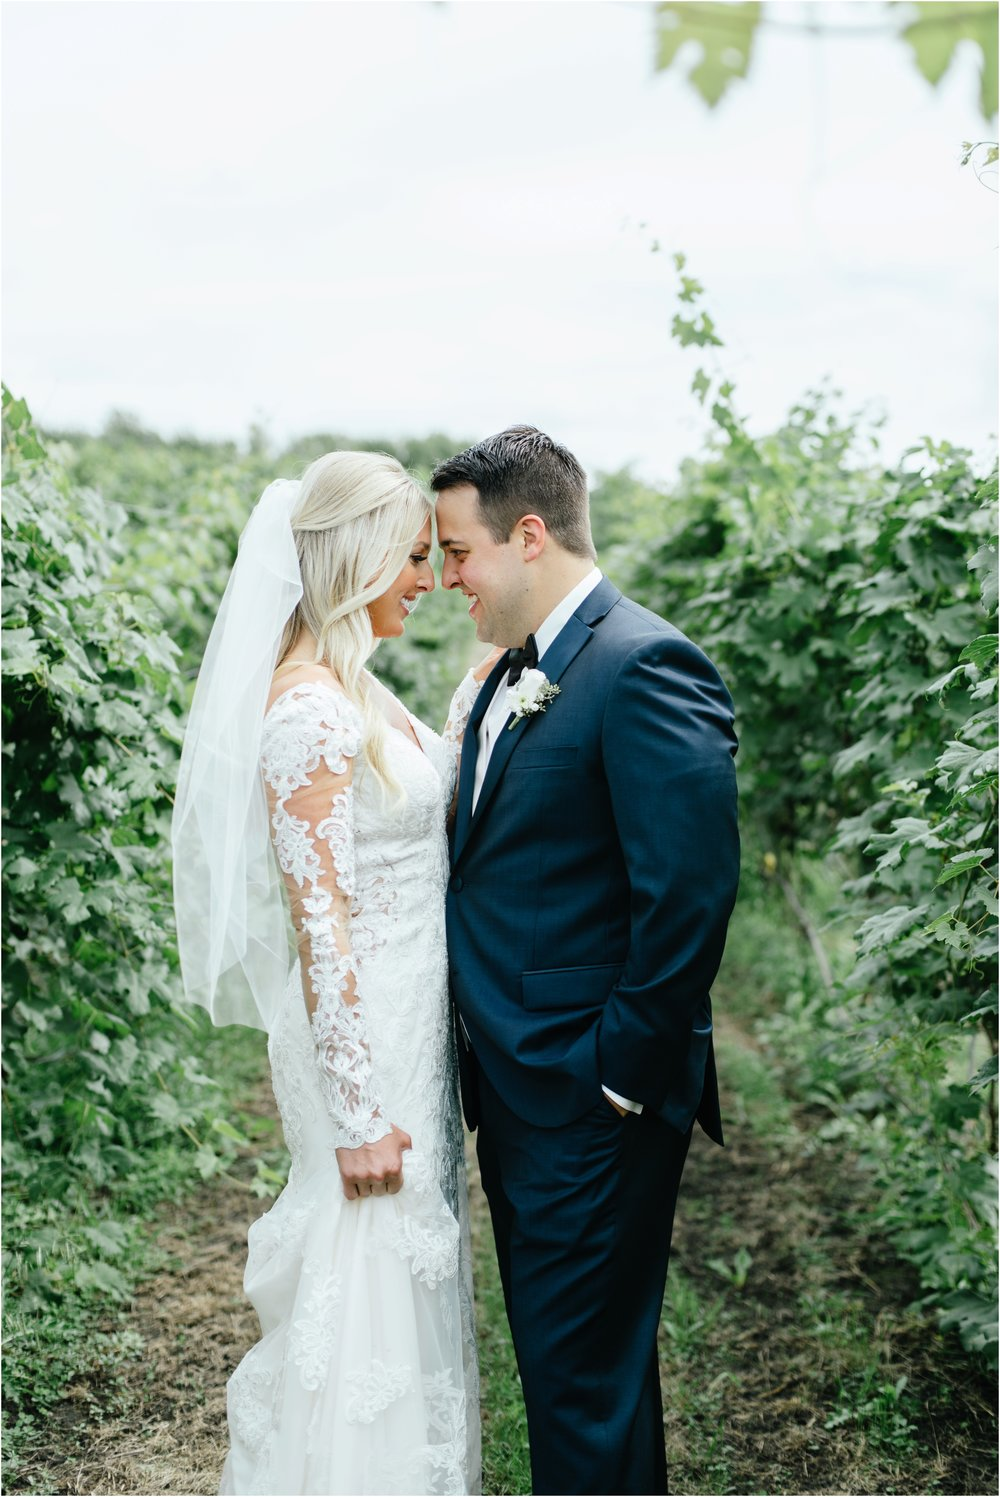 dallasweddingphotographer_fortworthweddingphotographer_texasweddingphotographer_mattandjulieweddings_vinyardwedding_Chelsey+Tom_0016.jpg